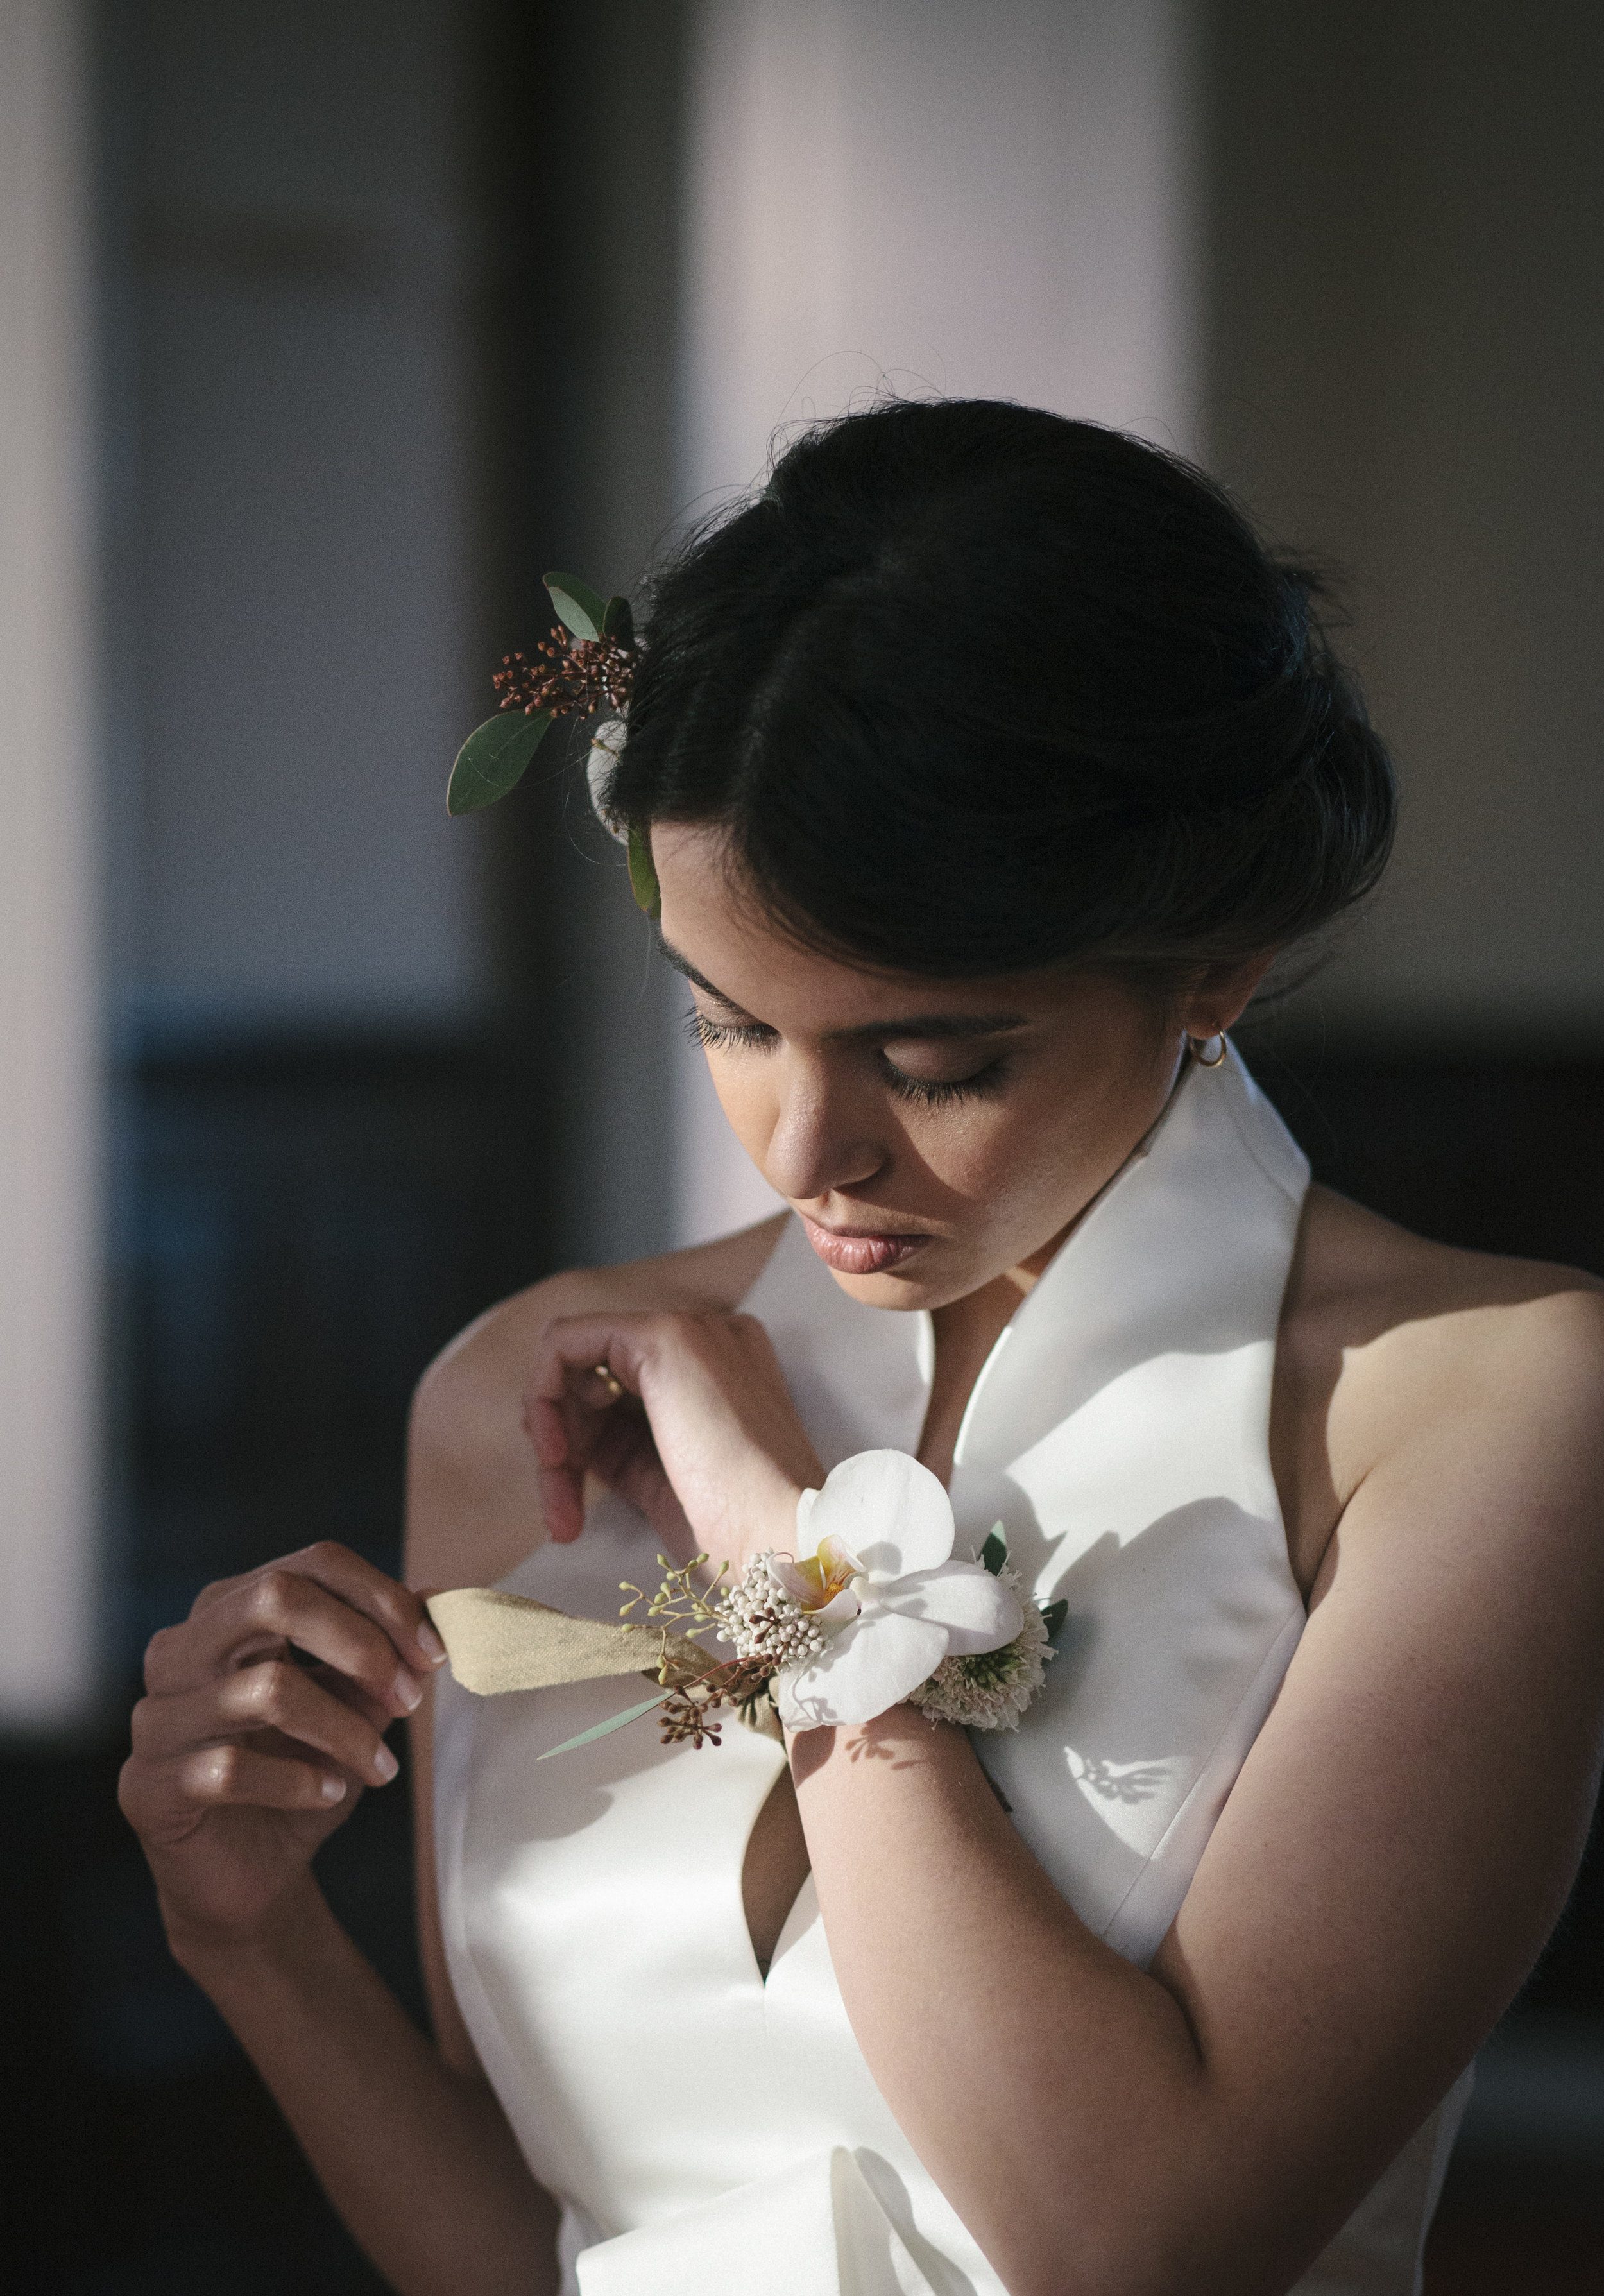 Portrait of a bride wearing magnolia headdress and bracelet and an elegant, modern dress by Jesus Peiró Porto. Images by Julia Jardim and Joana Carvalho for Oceânica.